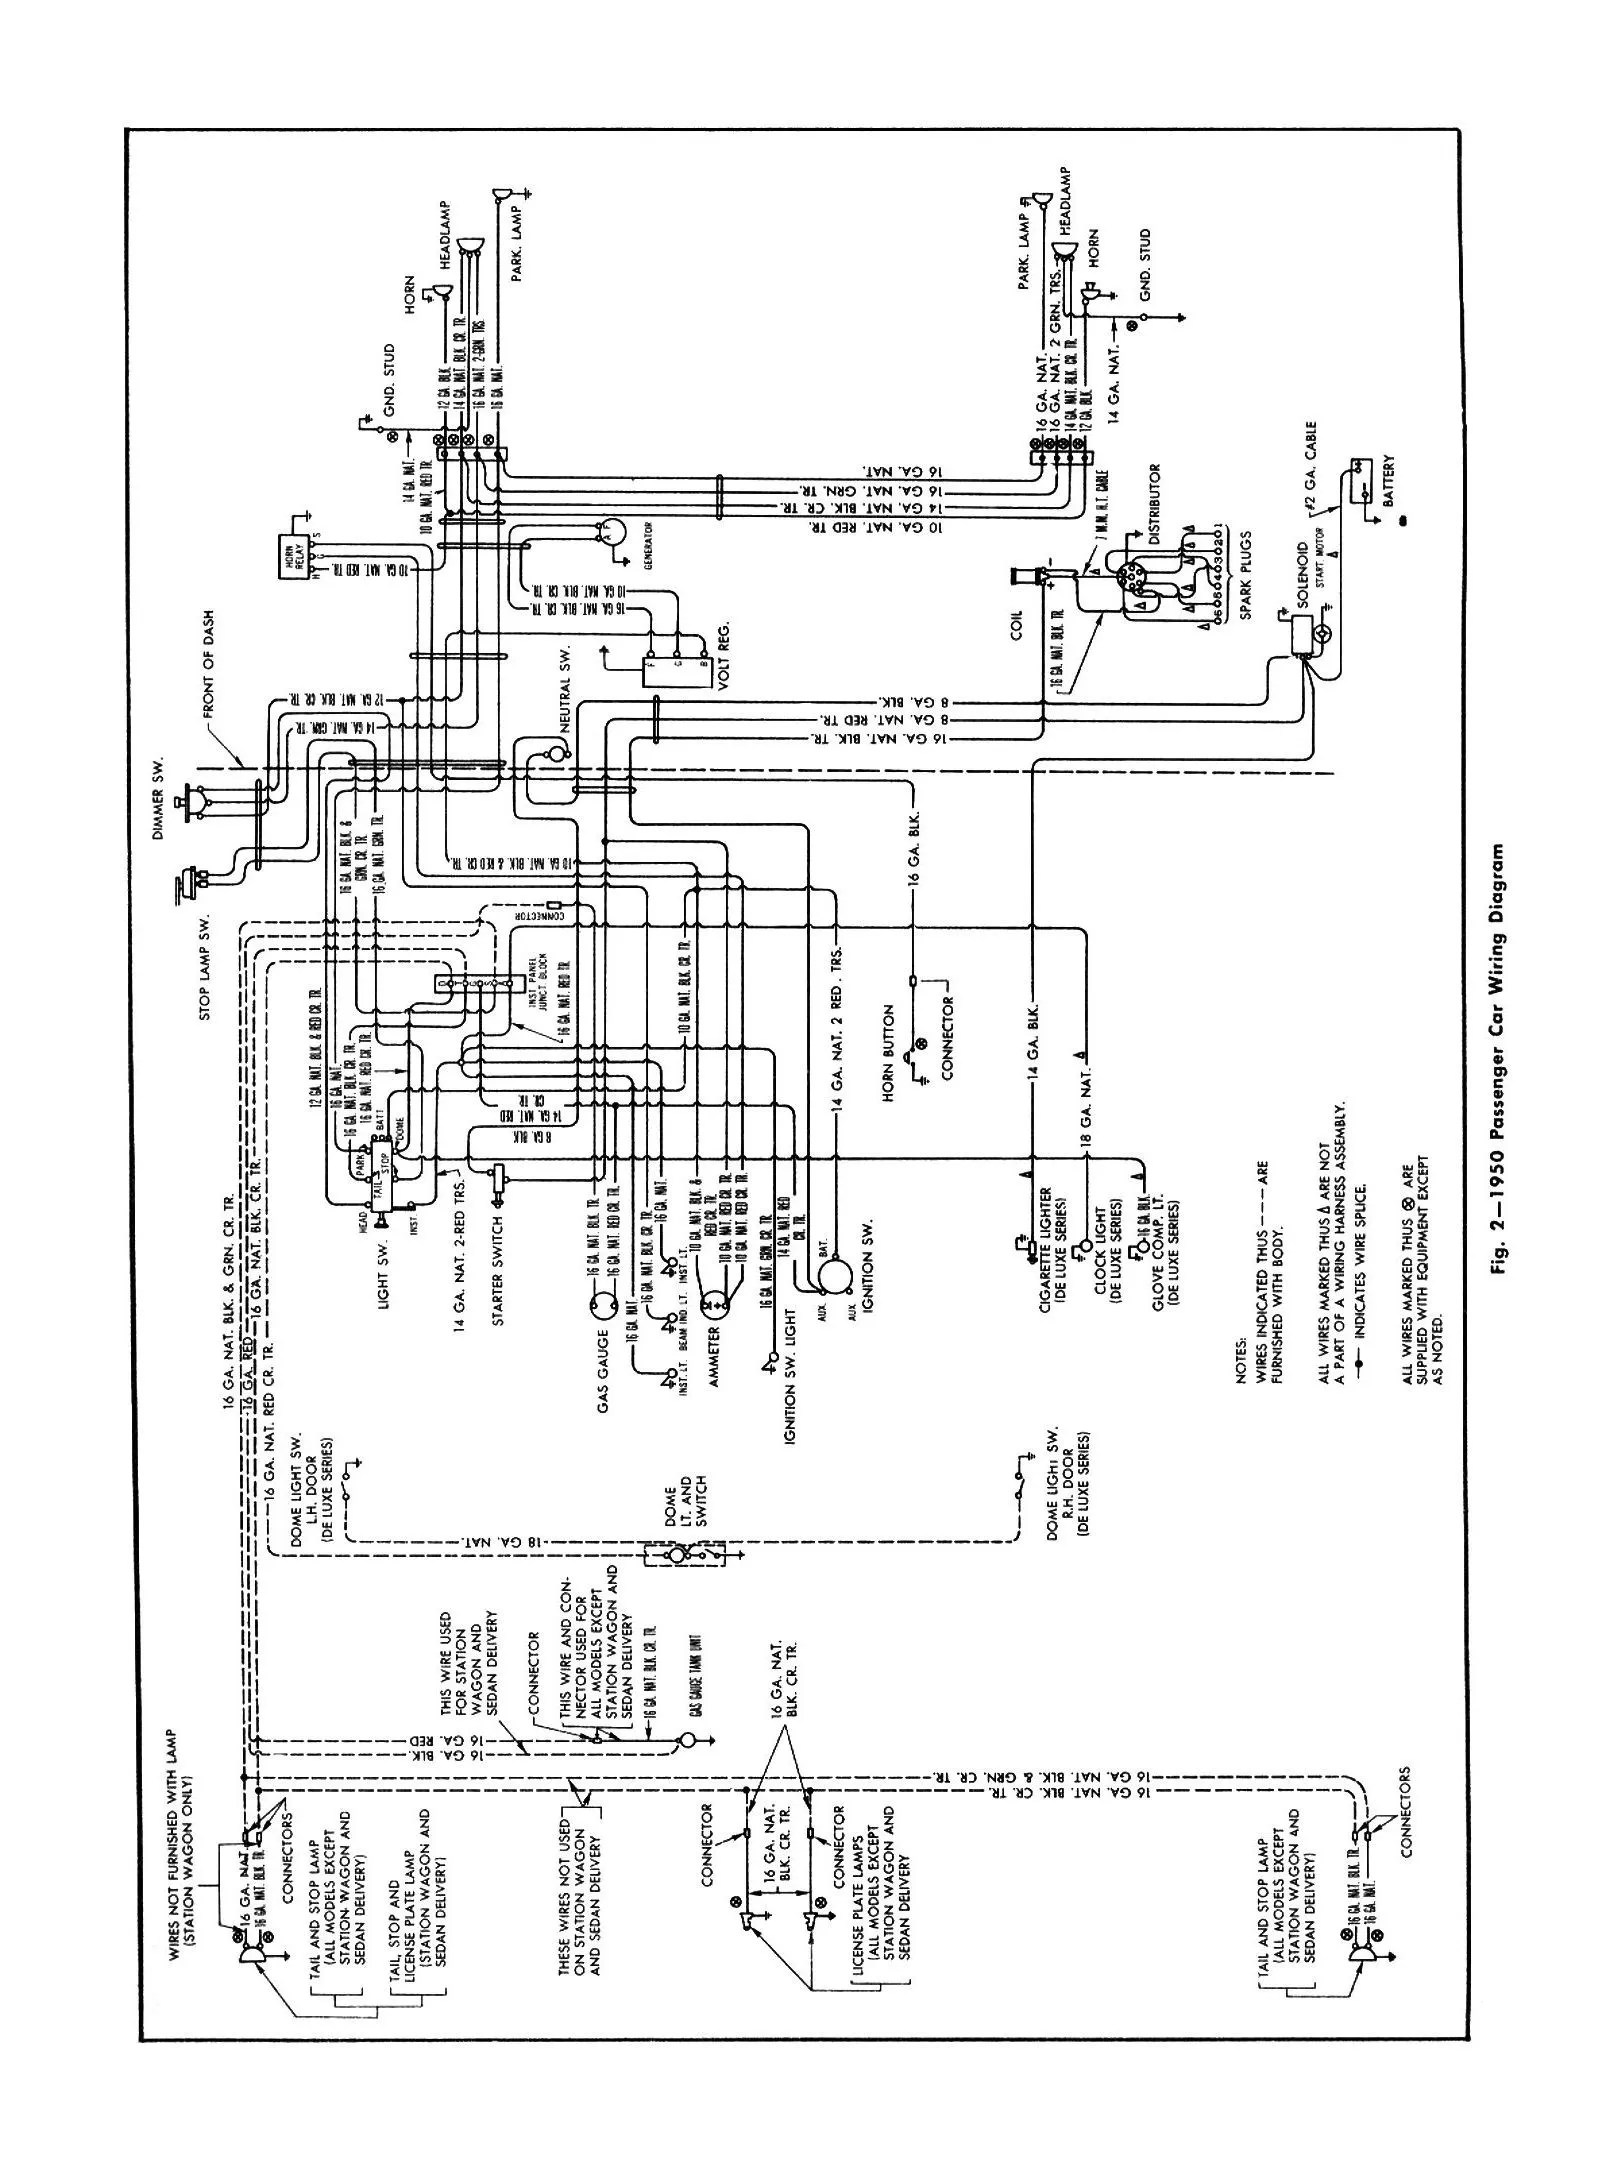 hight resolution of general wiring diagrams data schematic diagram general electric wiring diagrams general wiring diagrams